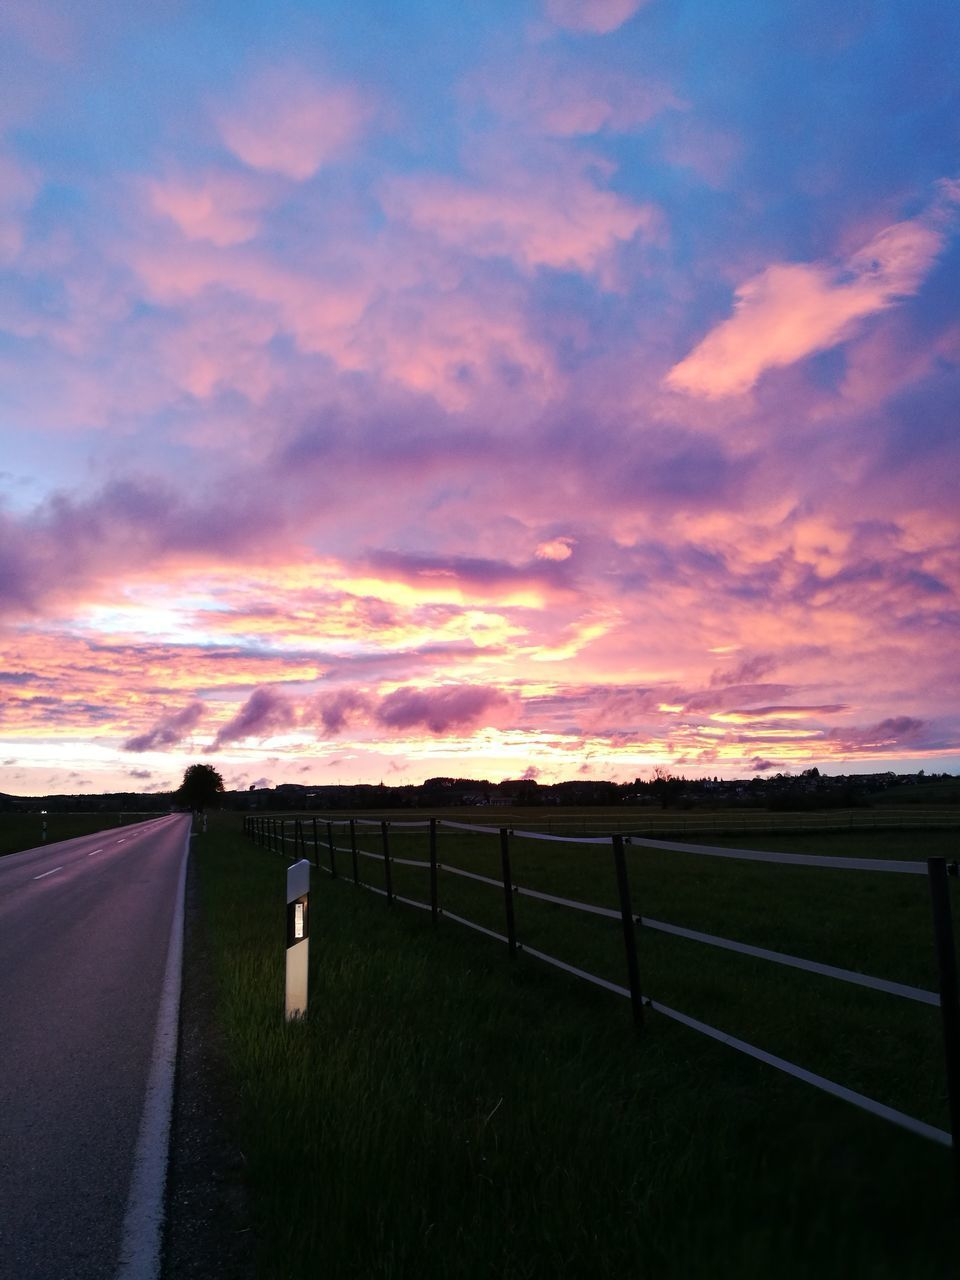 sunset, cloud - sky, sky, railing, no people, tranquil scene, nature, scenics, tranquility, outdoors, road, beauty in nature, day